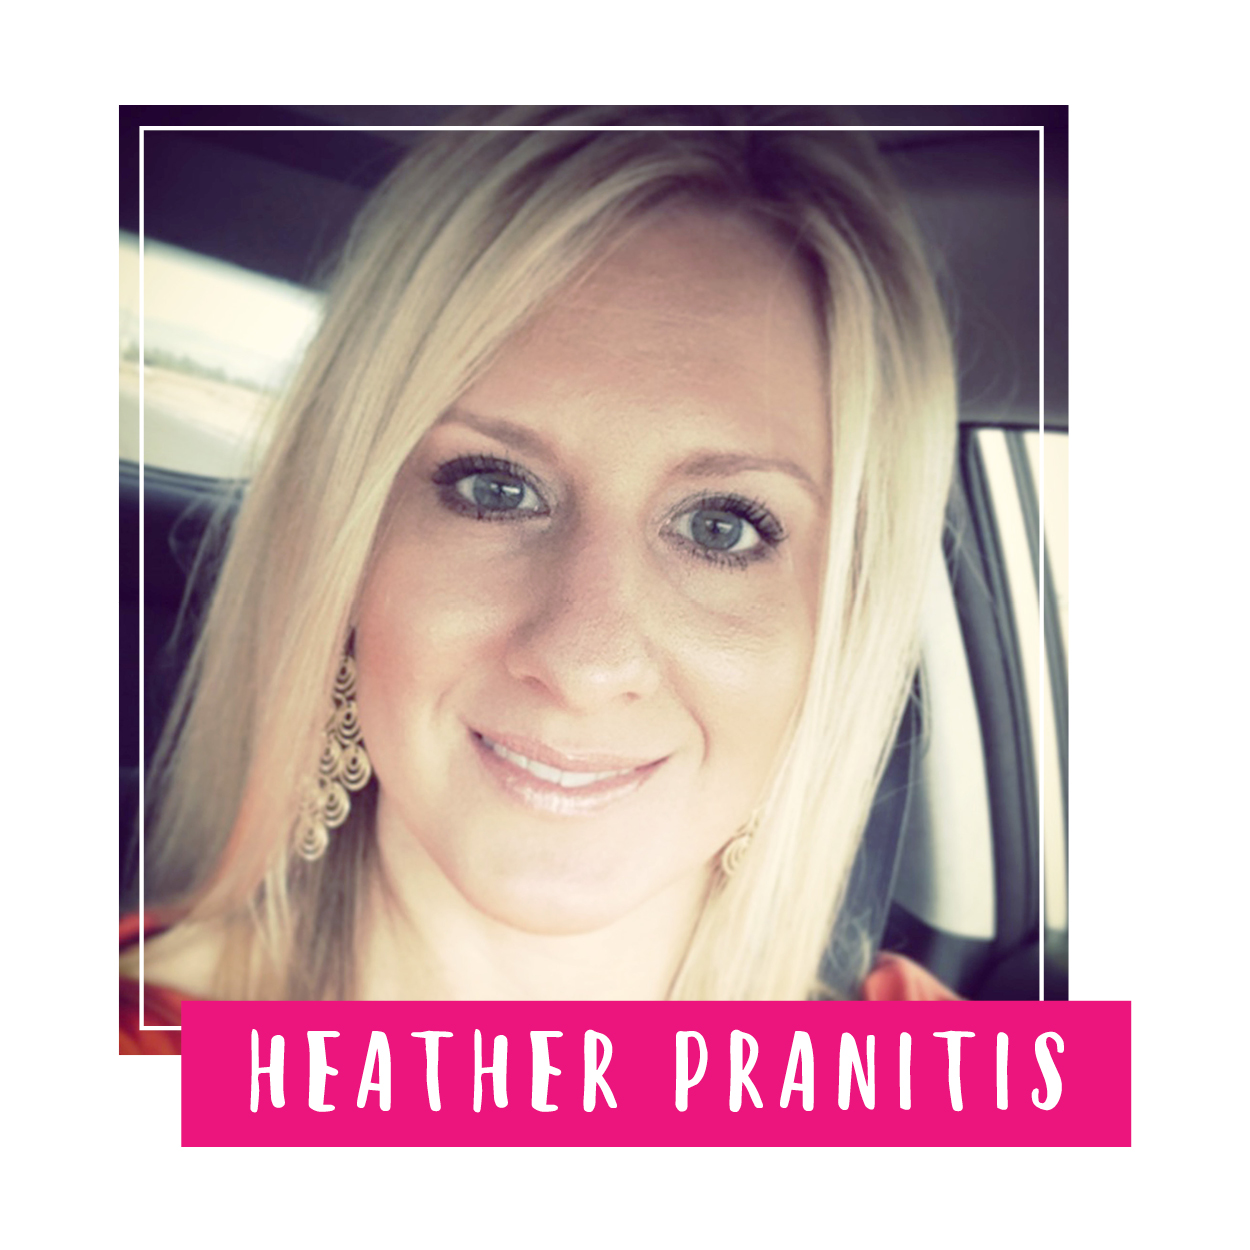 heather-pranitis